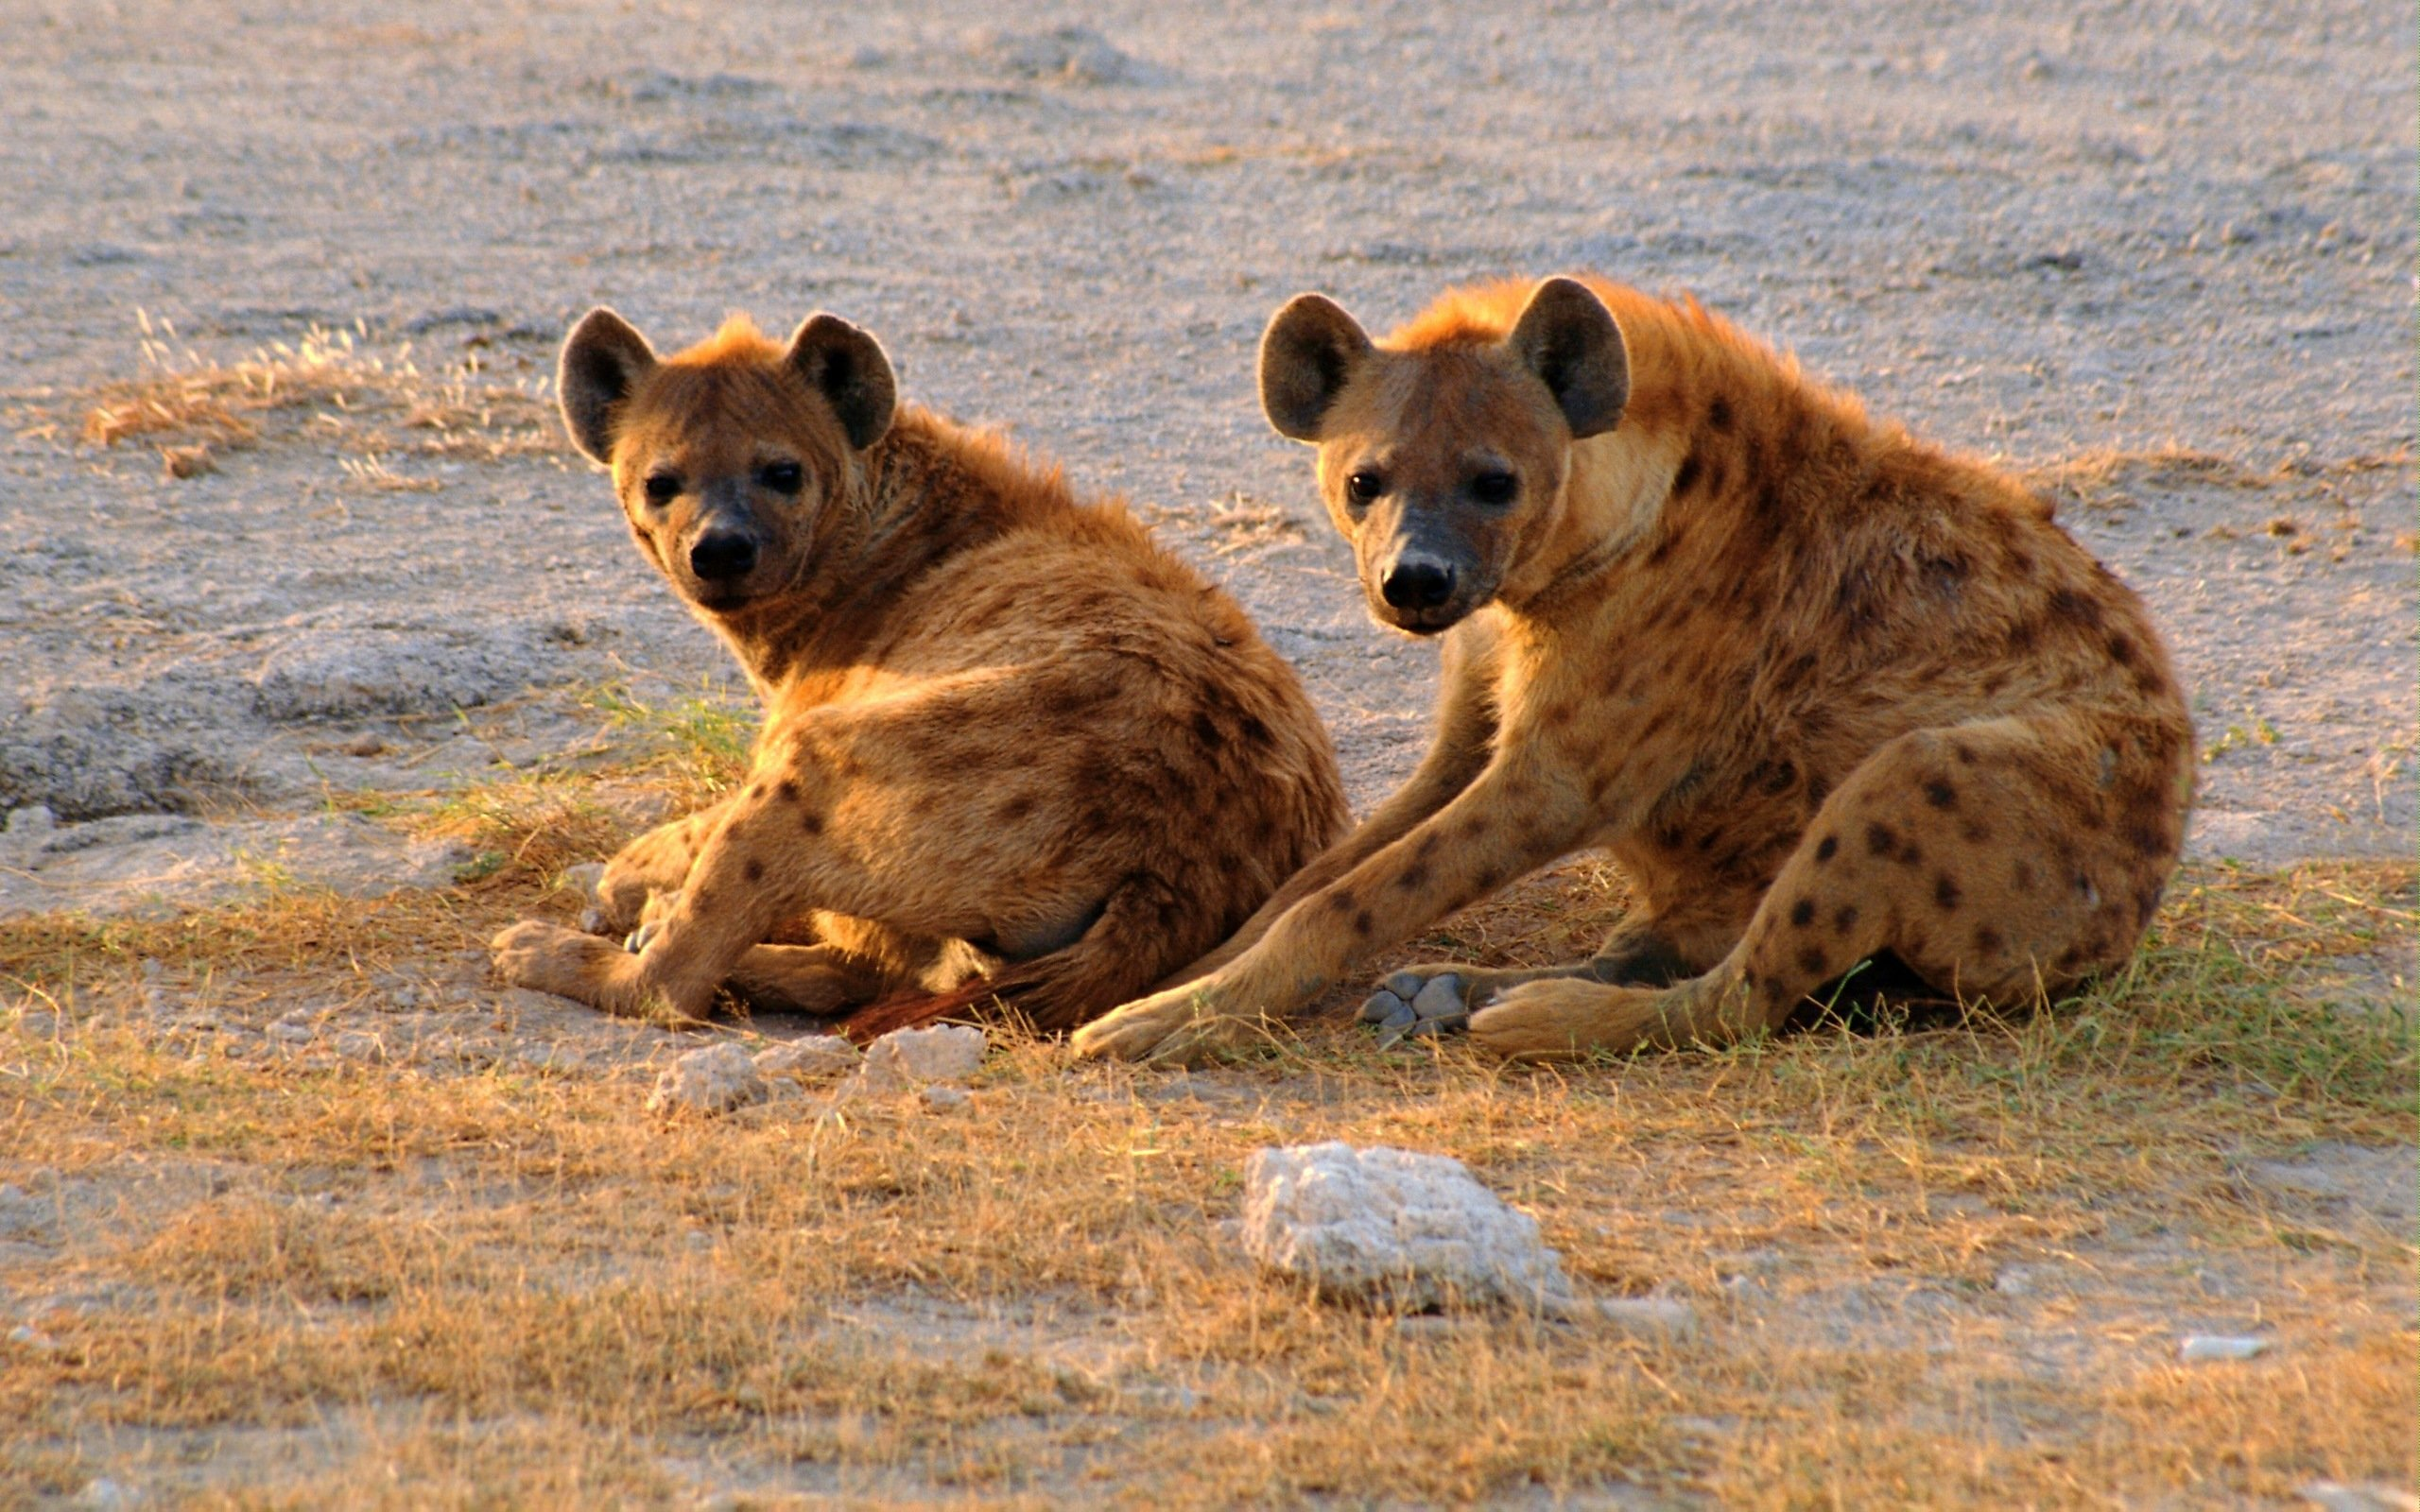 Free download Hyena wallpaper ID:239232 hd 2560x1600 for computer